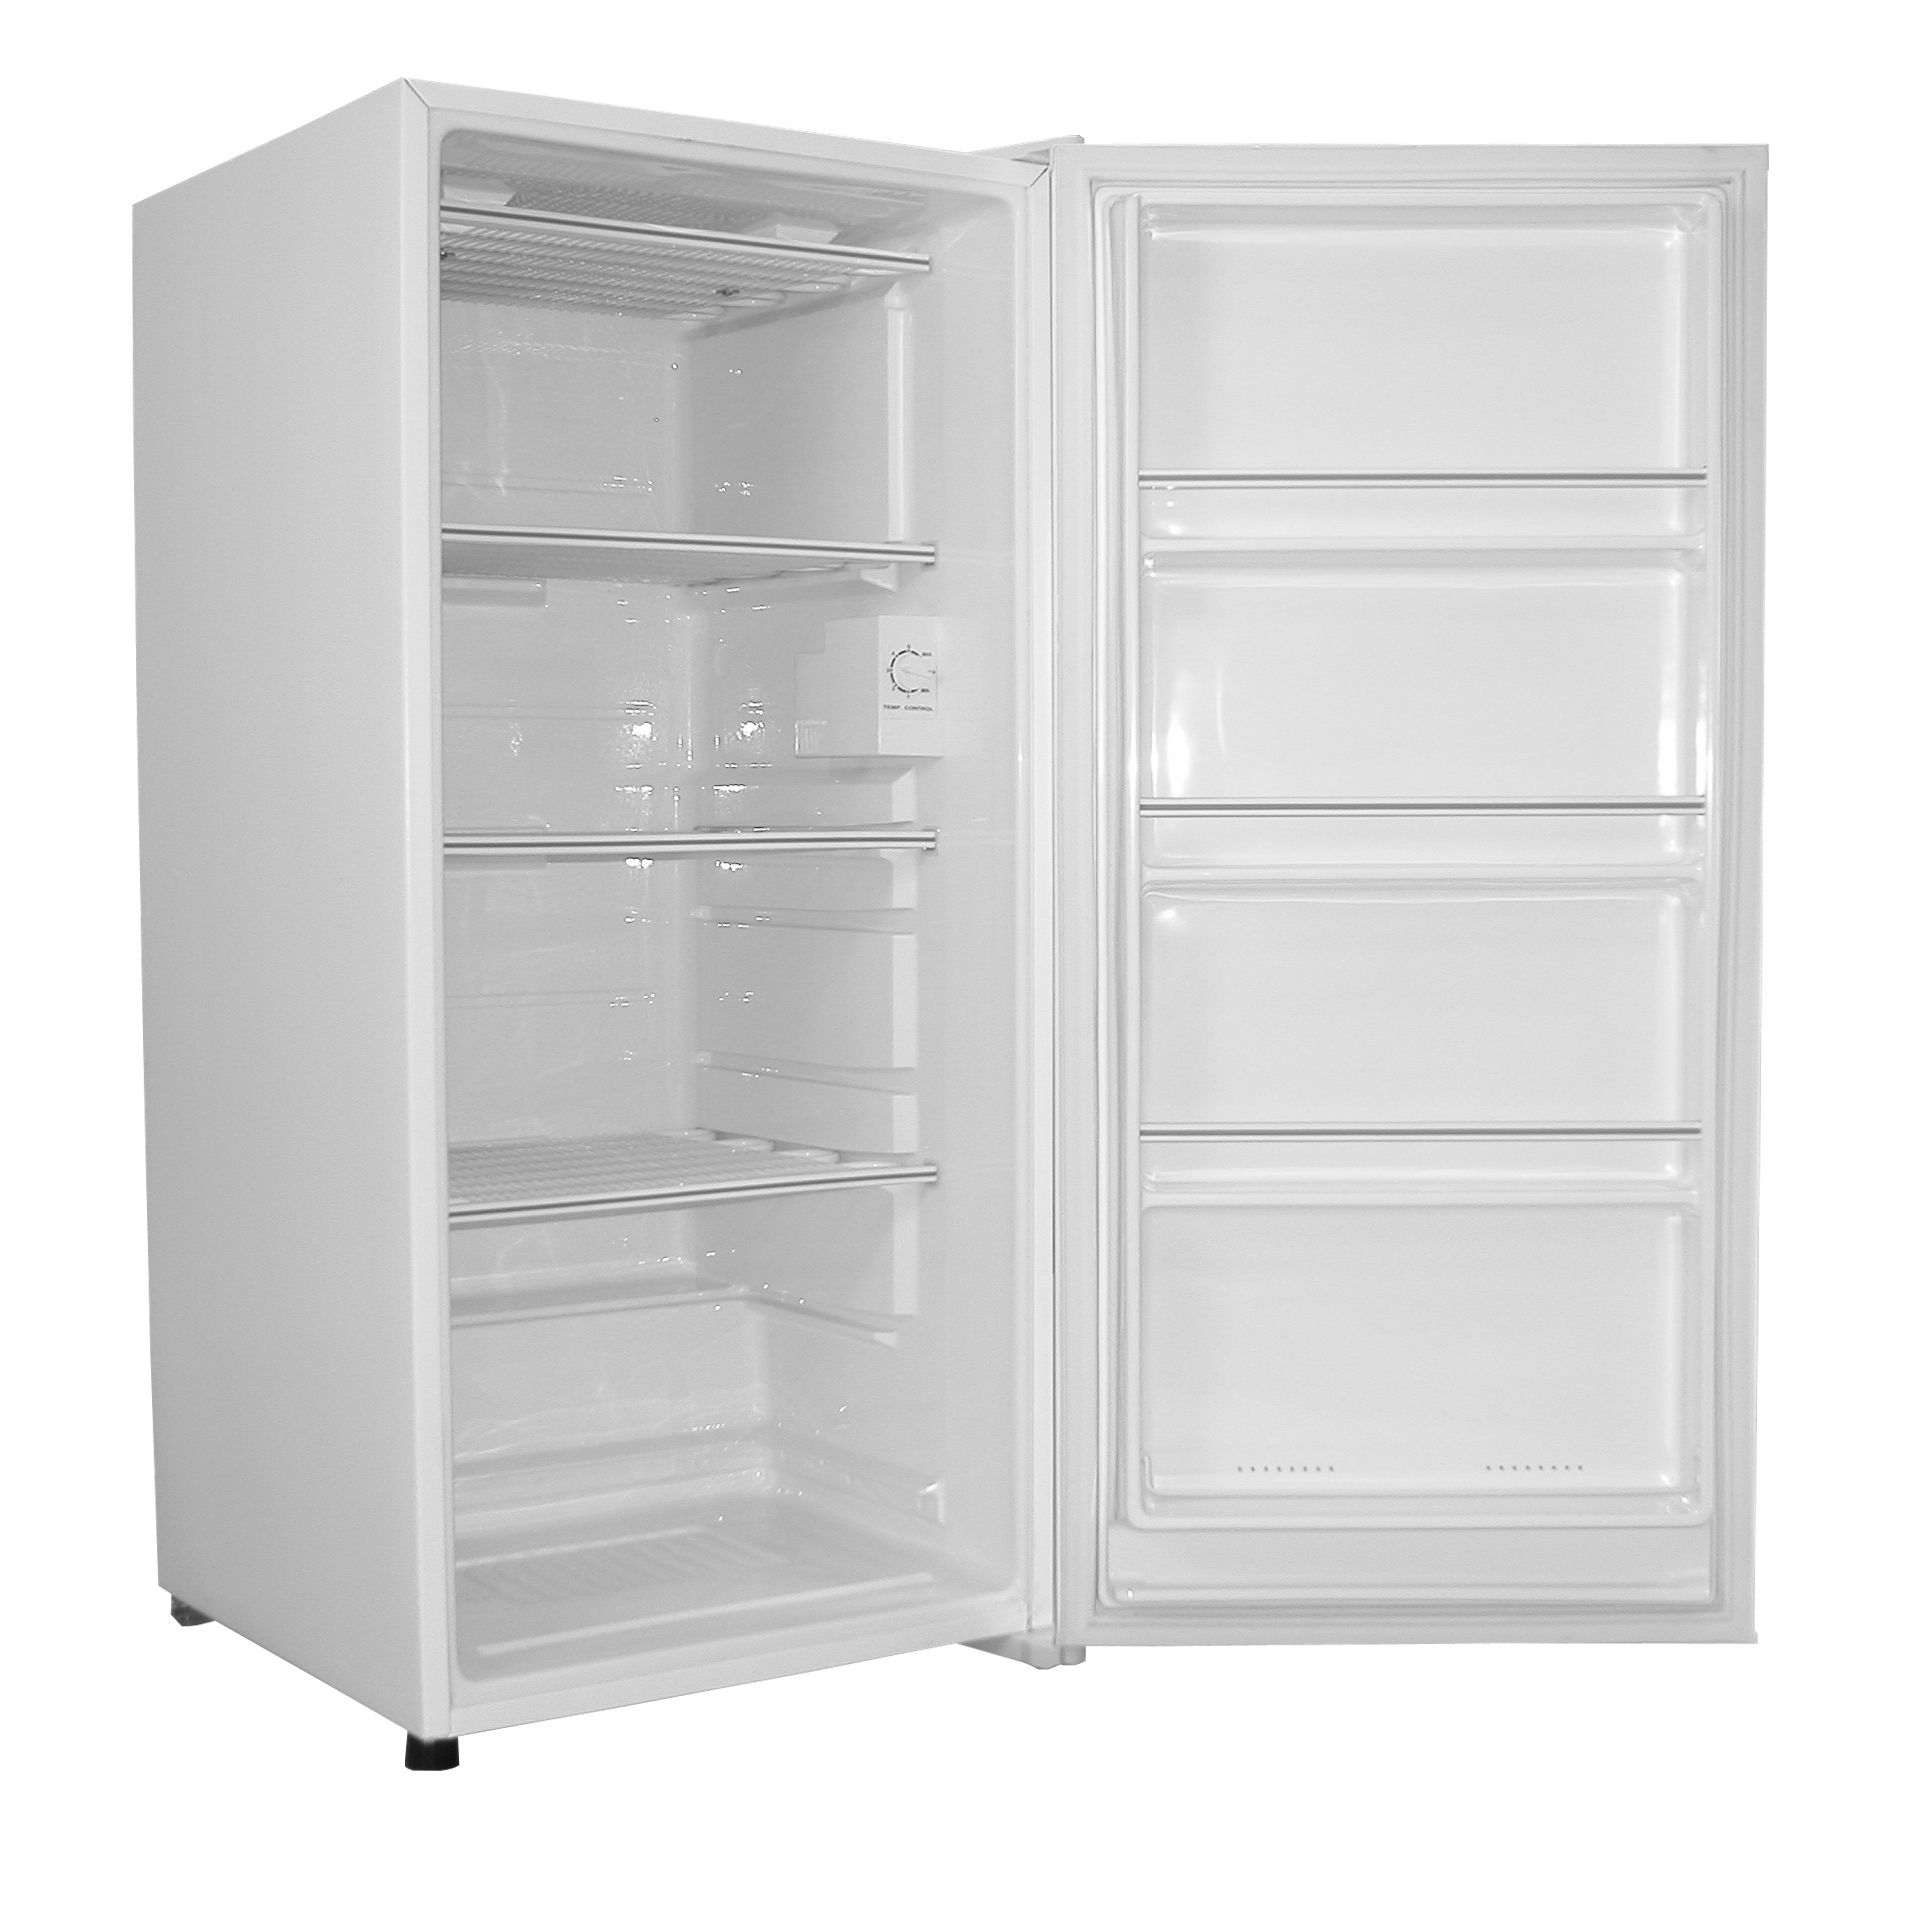 Kenmore 7.5 cu. ft. Upright Freezer (2870)